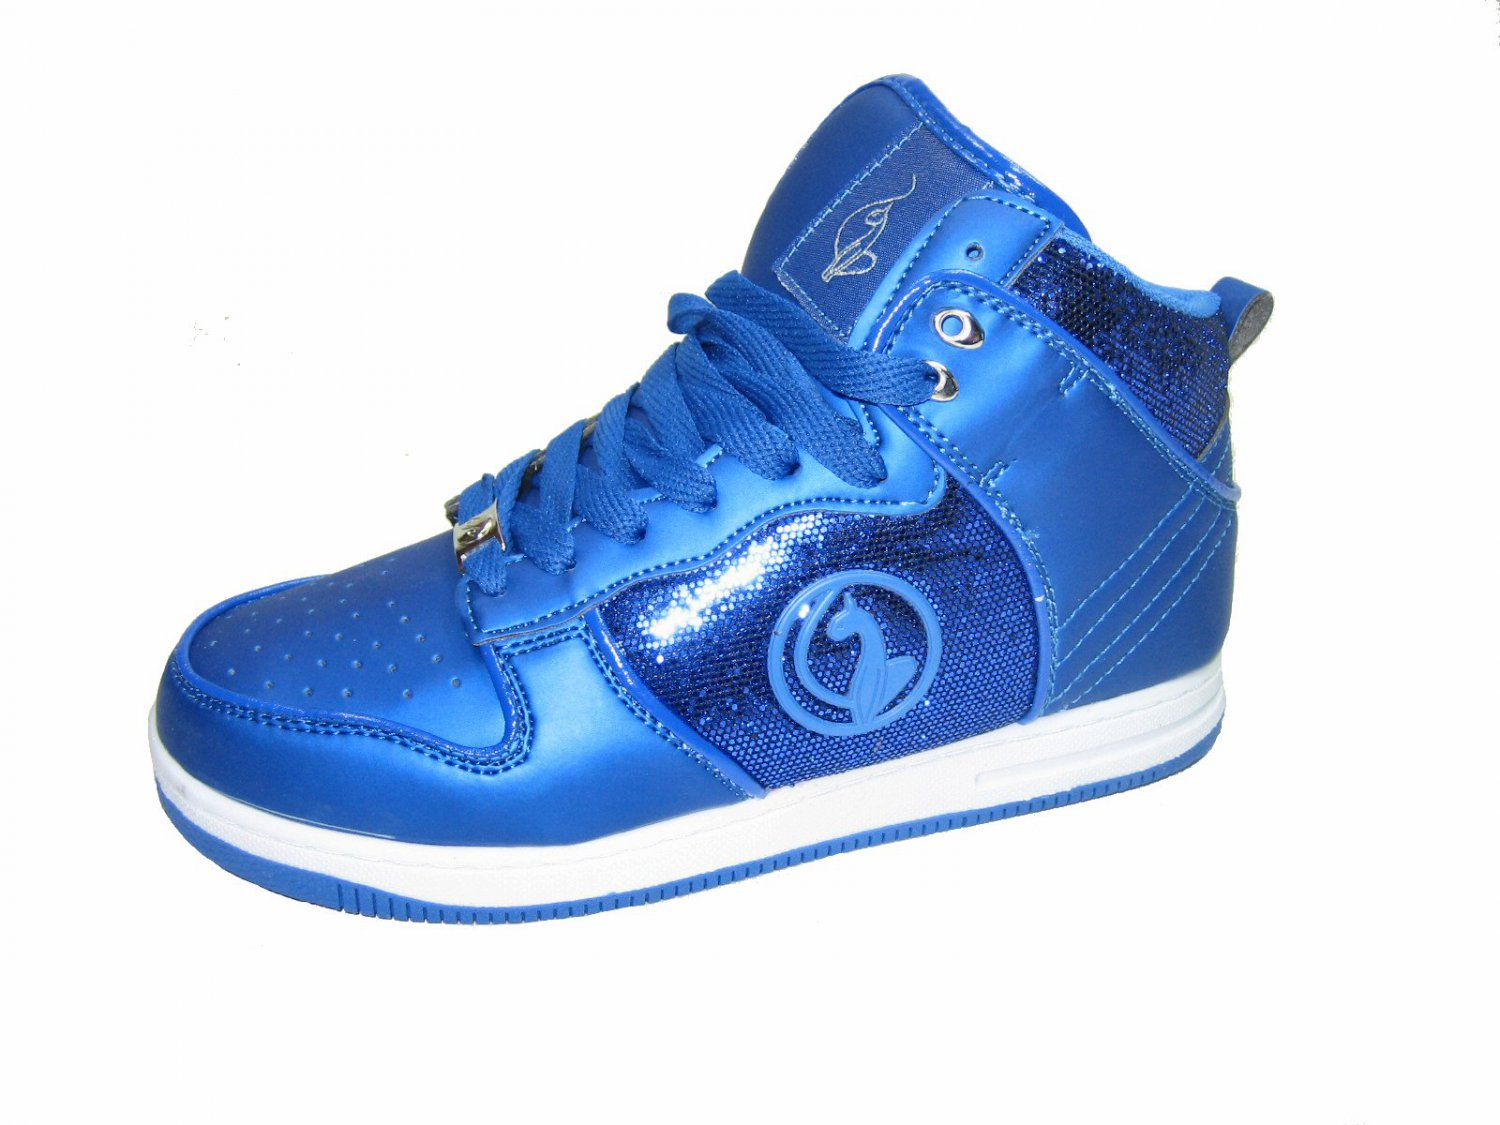 Baby Phat Gina women s athletic fort flats high top